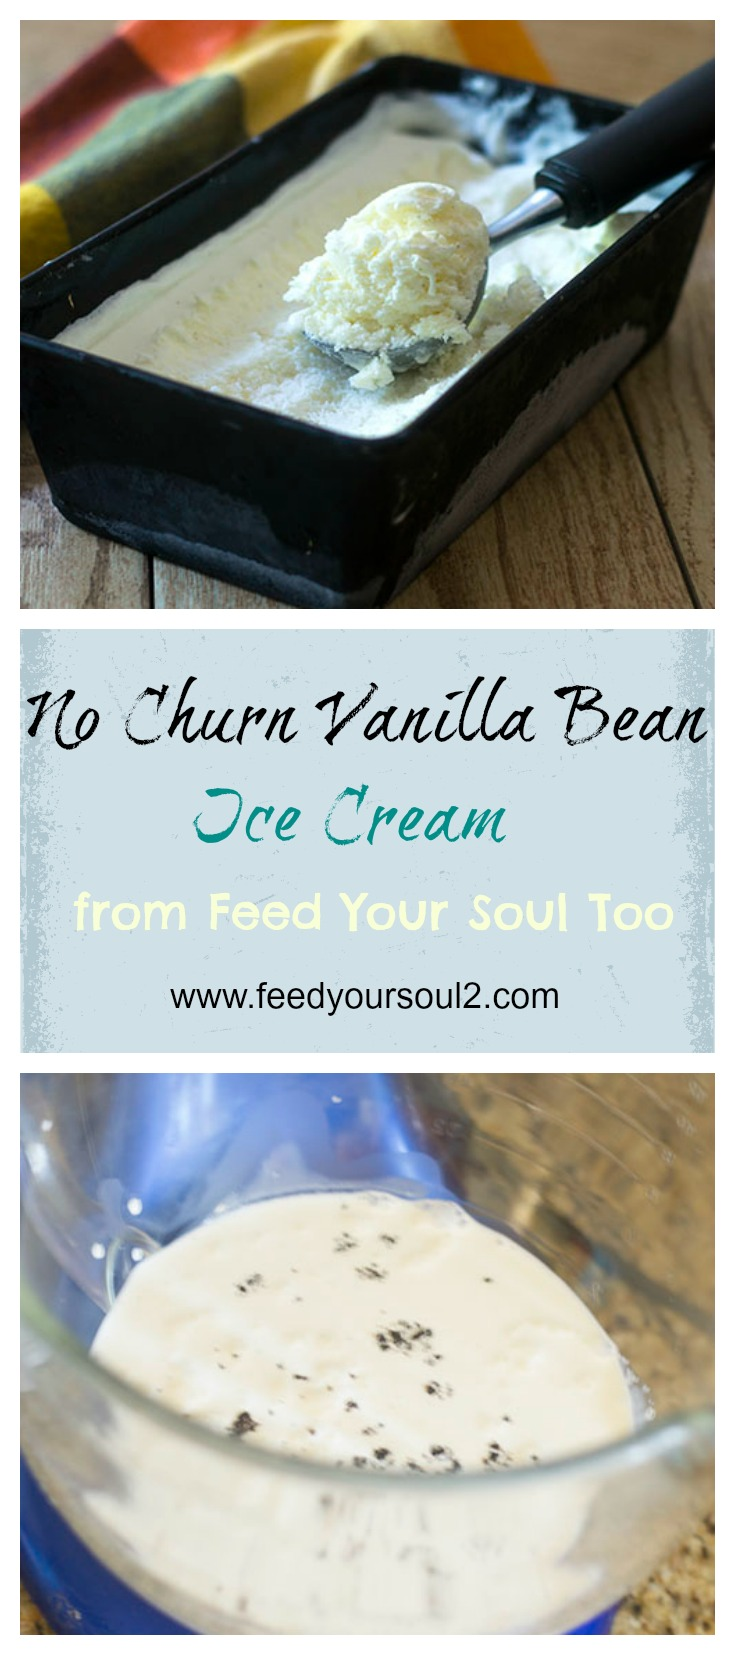 No Churn Vanilla Bean Ice Cream #Dessert #vanilla #icecream | feedyoursoul2.com